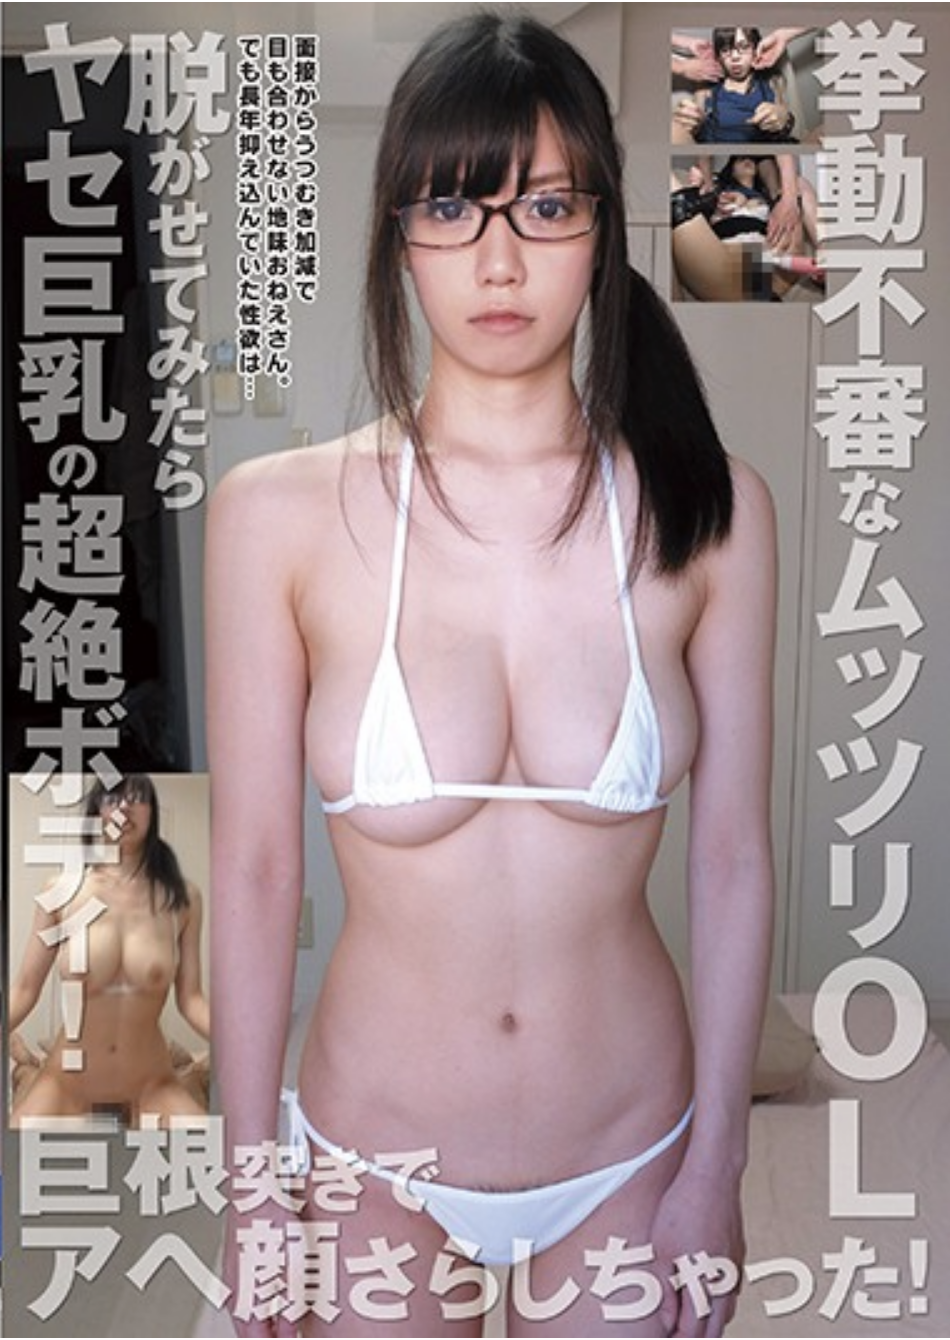 挙動不審なムッツリOL 脱がせてみたらヤセ巨乳の超絶ボディ!巨根突きでアヘ顔さらしちゃった!